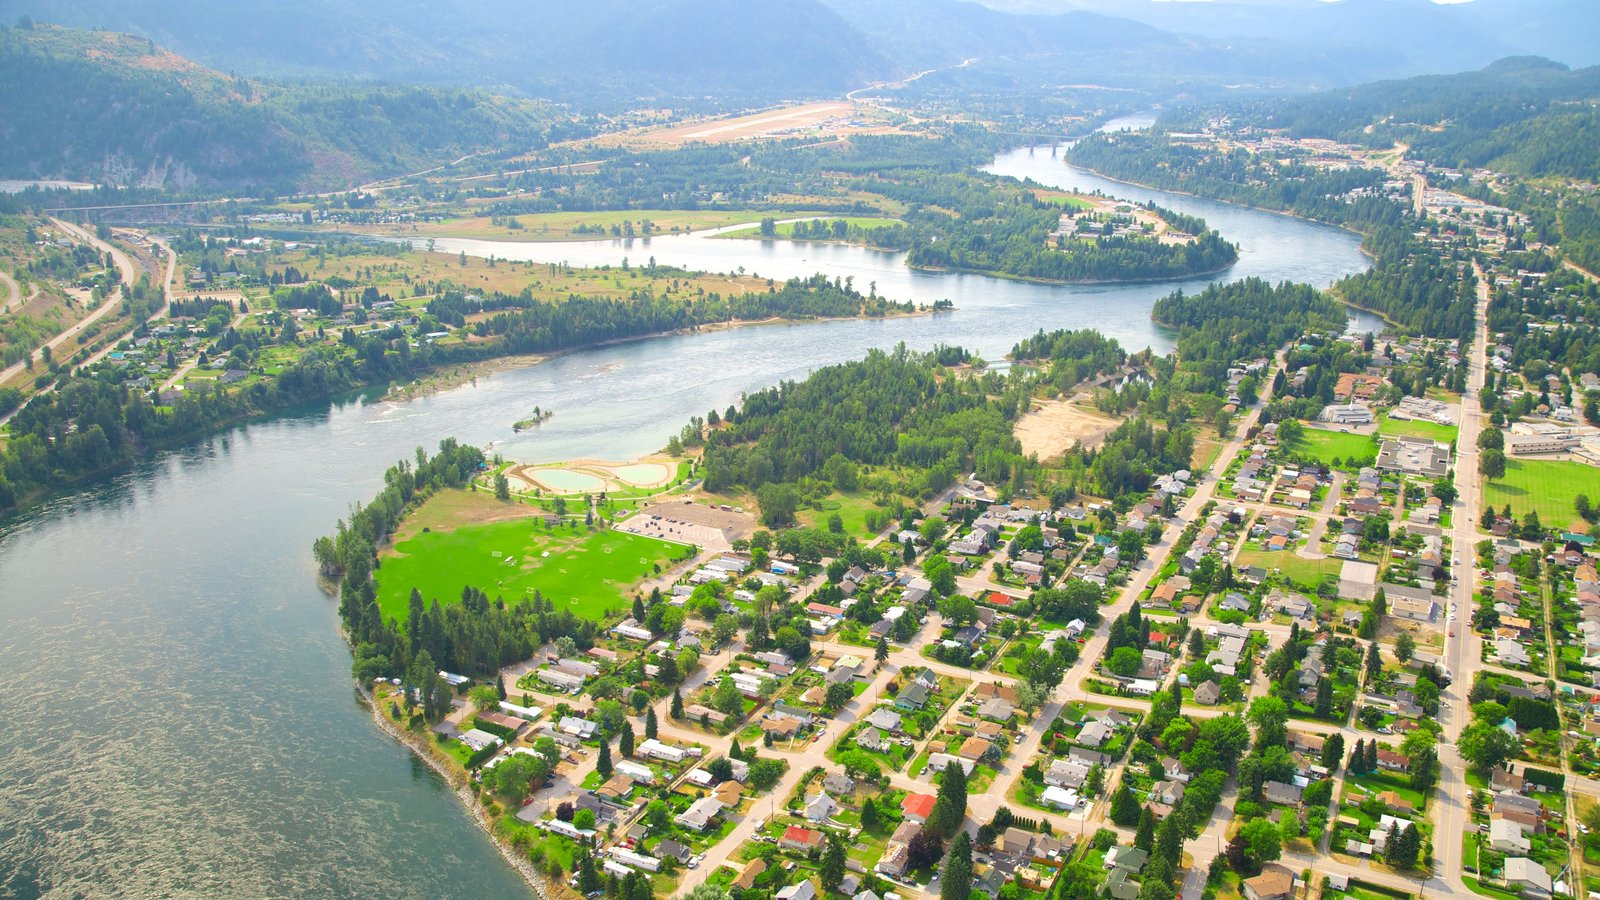 Castlegar featuring a river or creek, landscape views and a small town or village